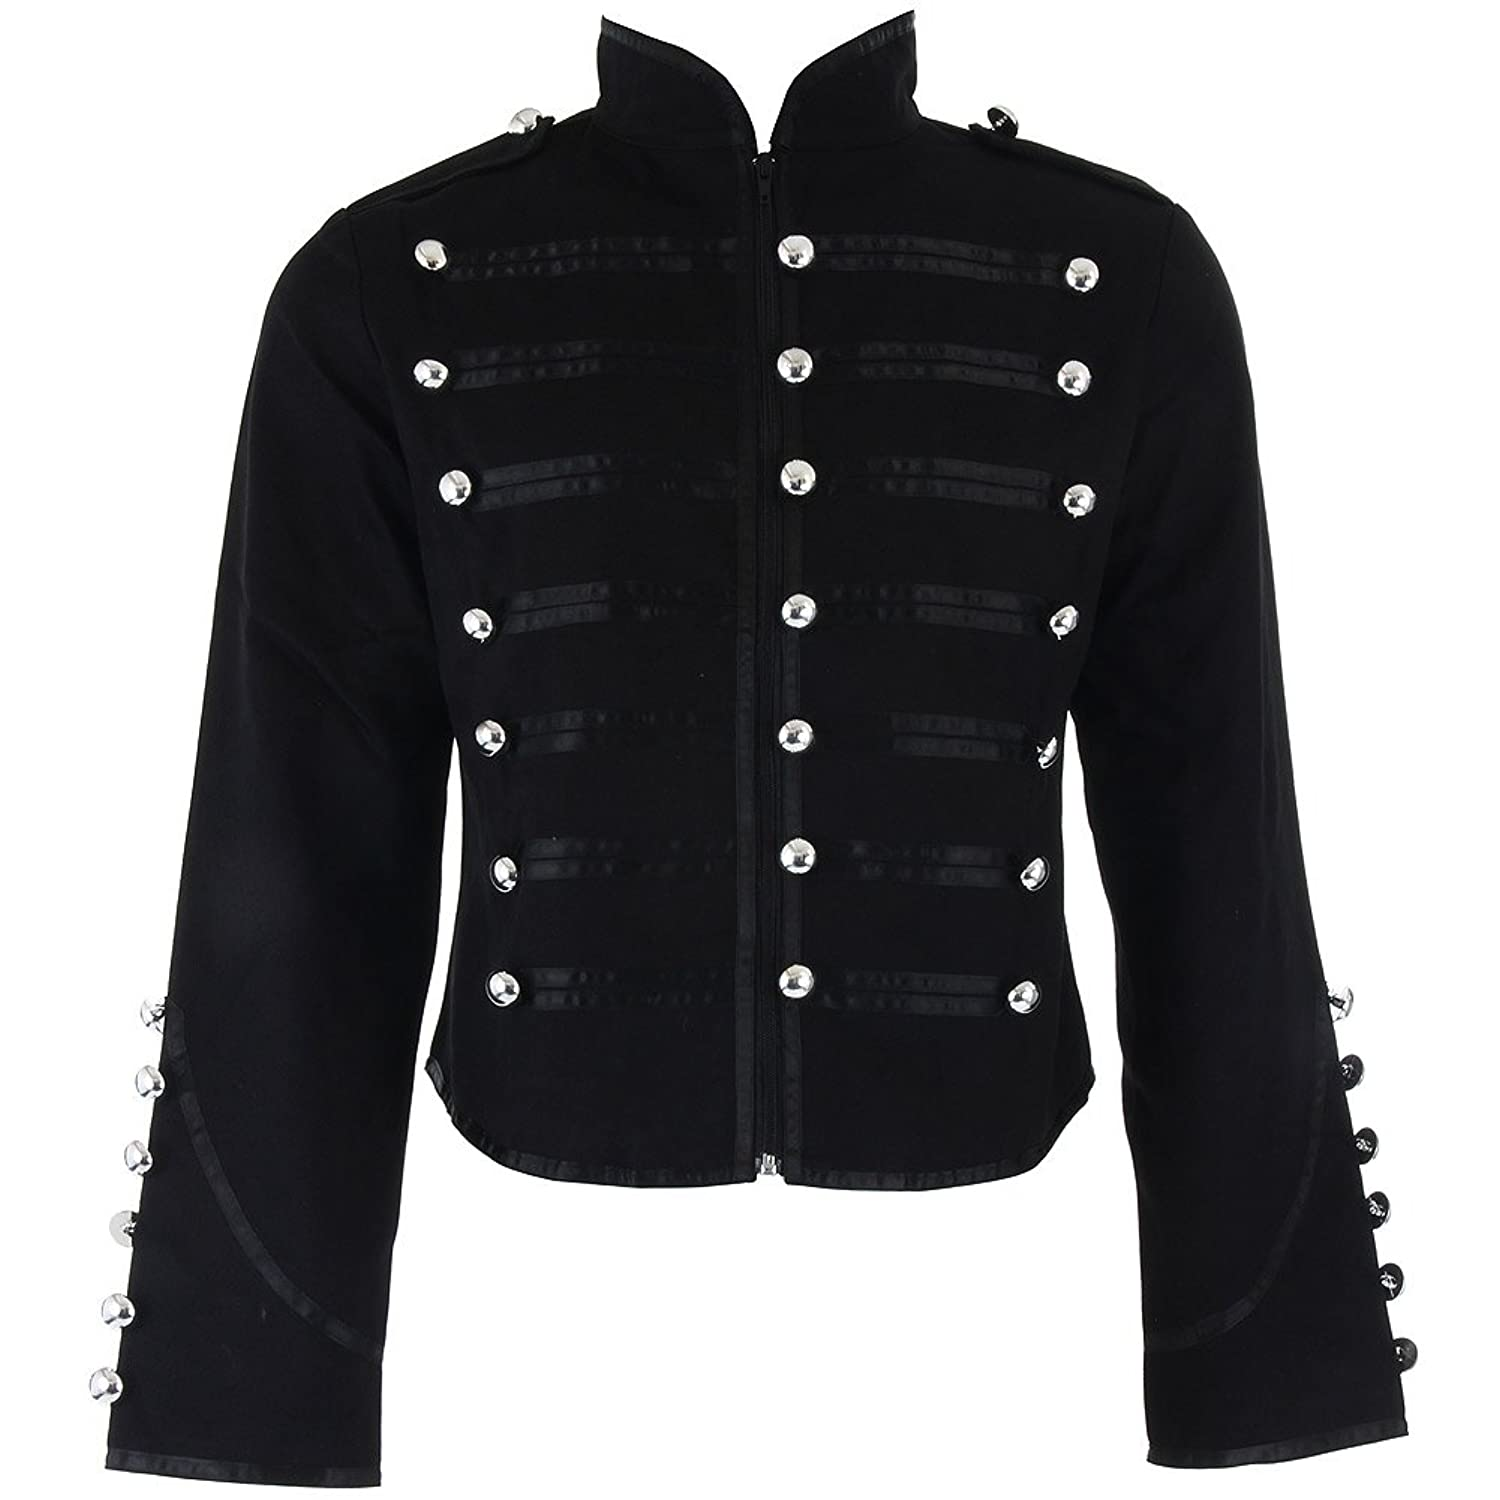 Men's Steampunk Coats, Jackets, Suits